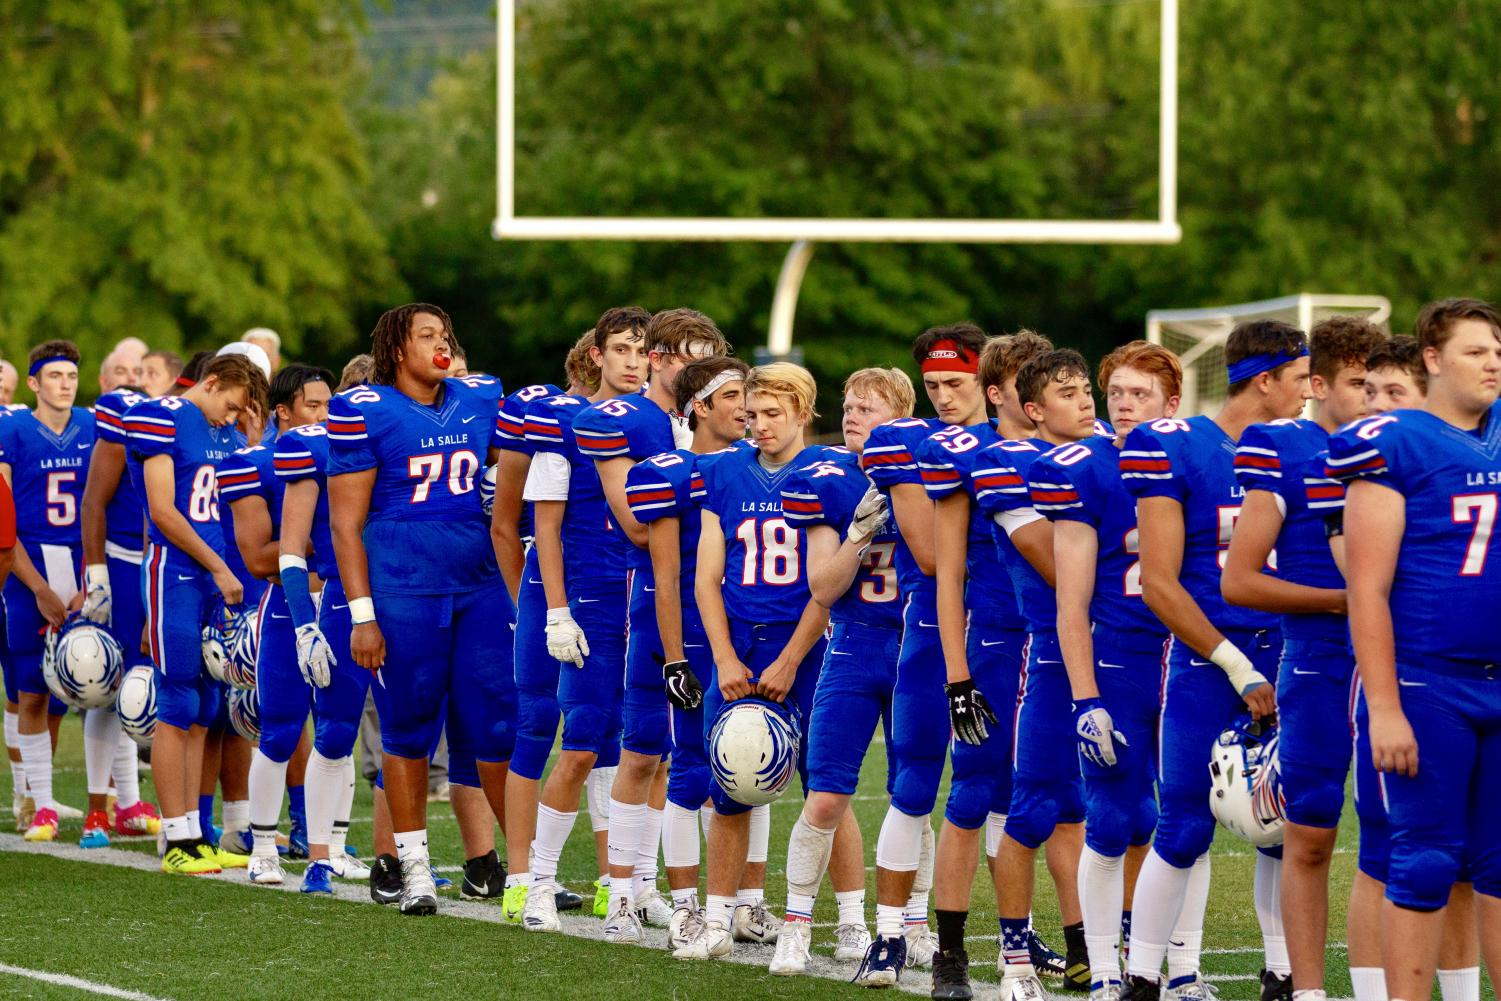 This year La Salle's varsity football team consisted of 51 players.